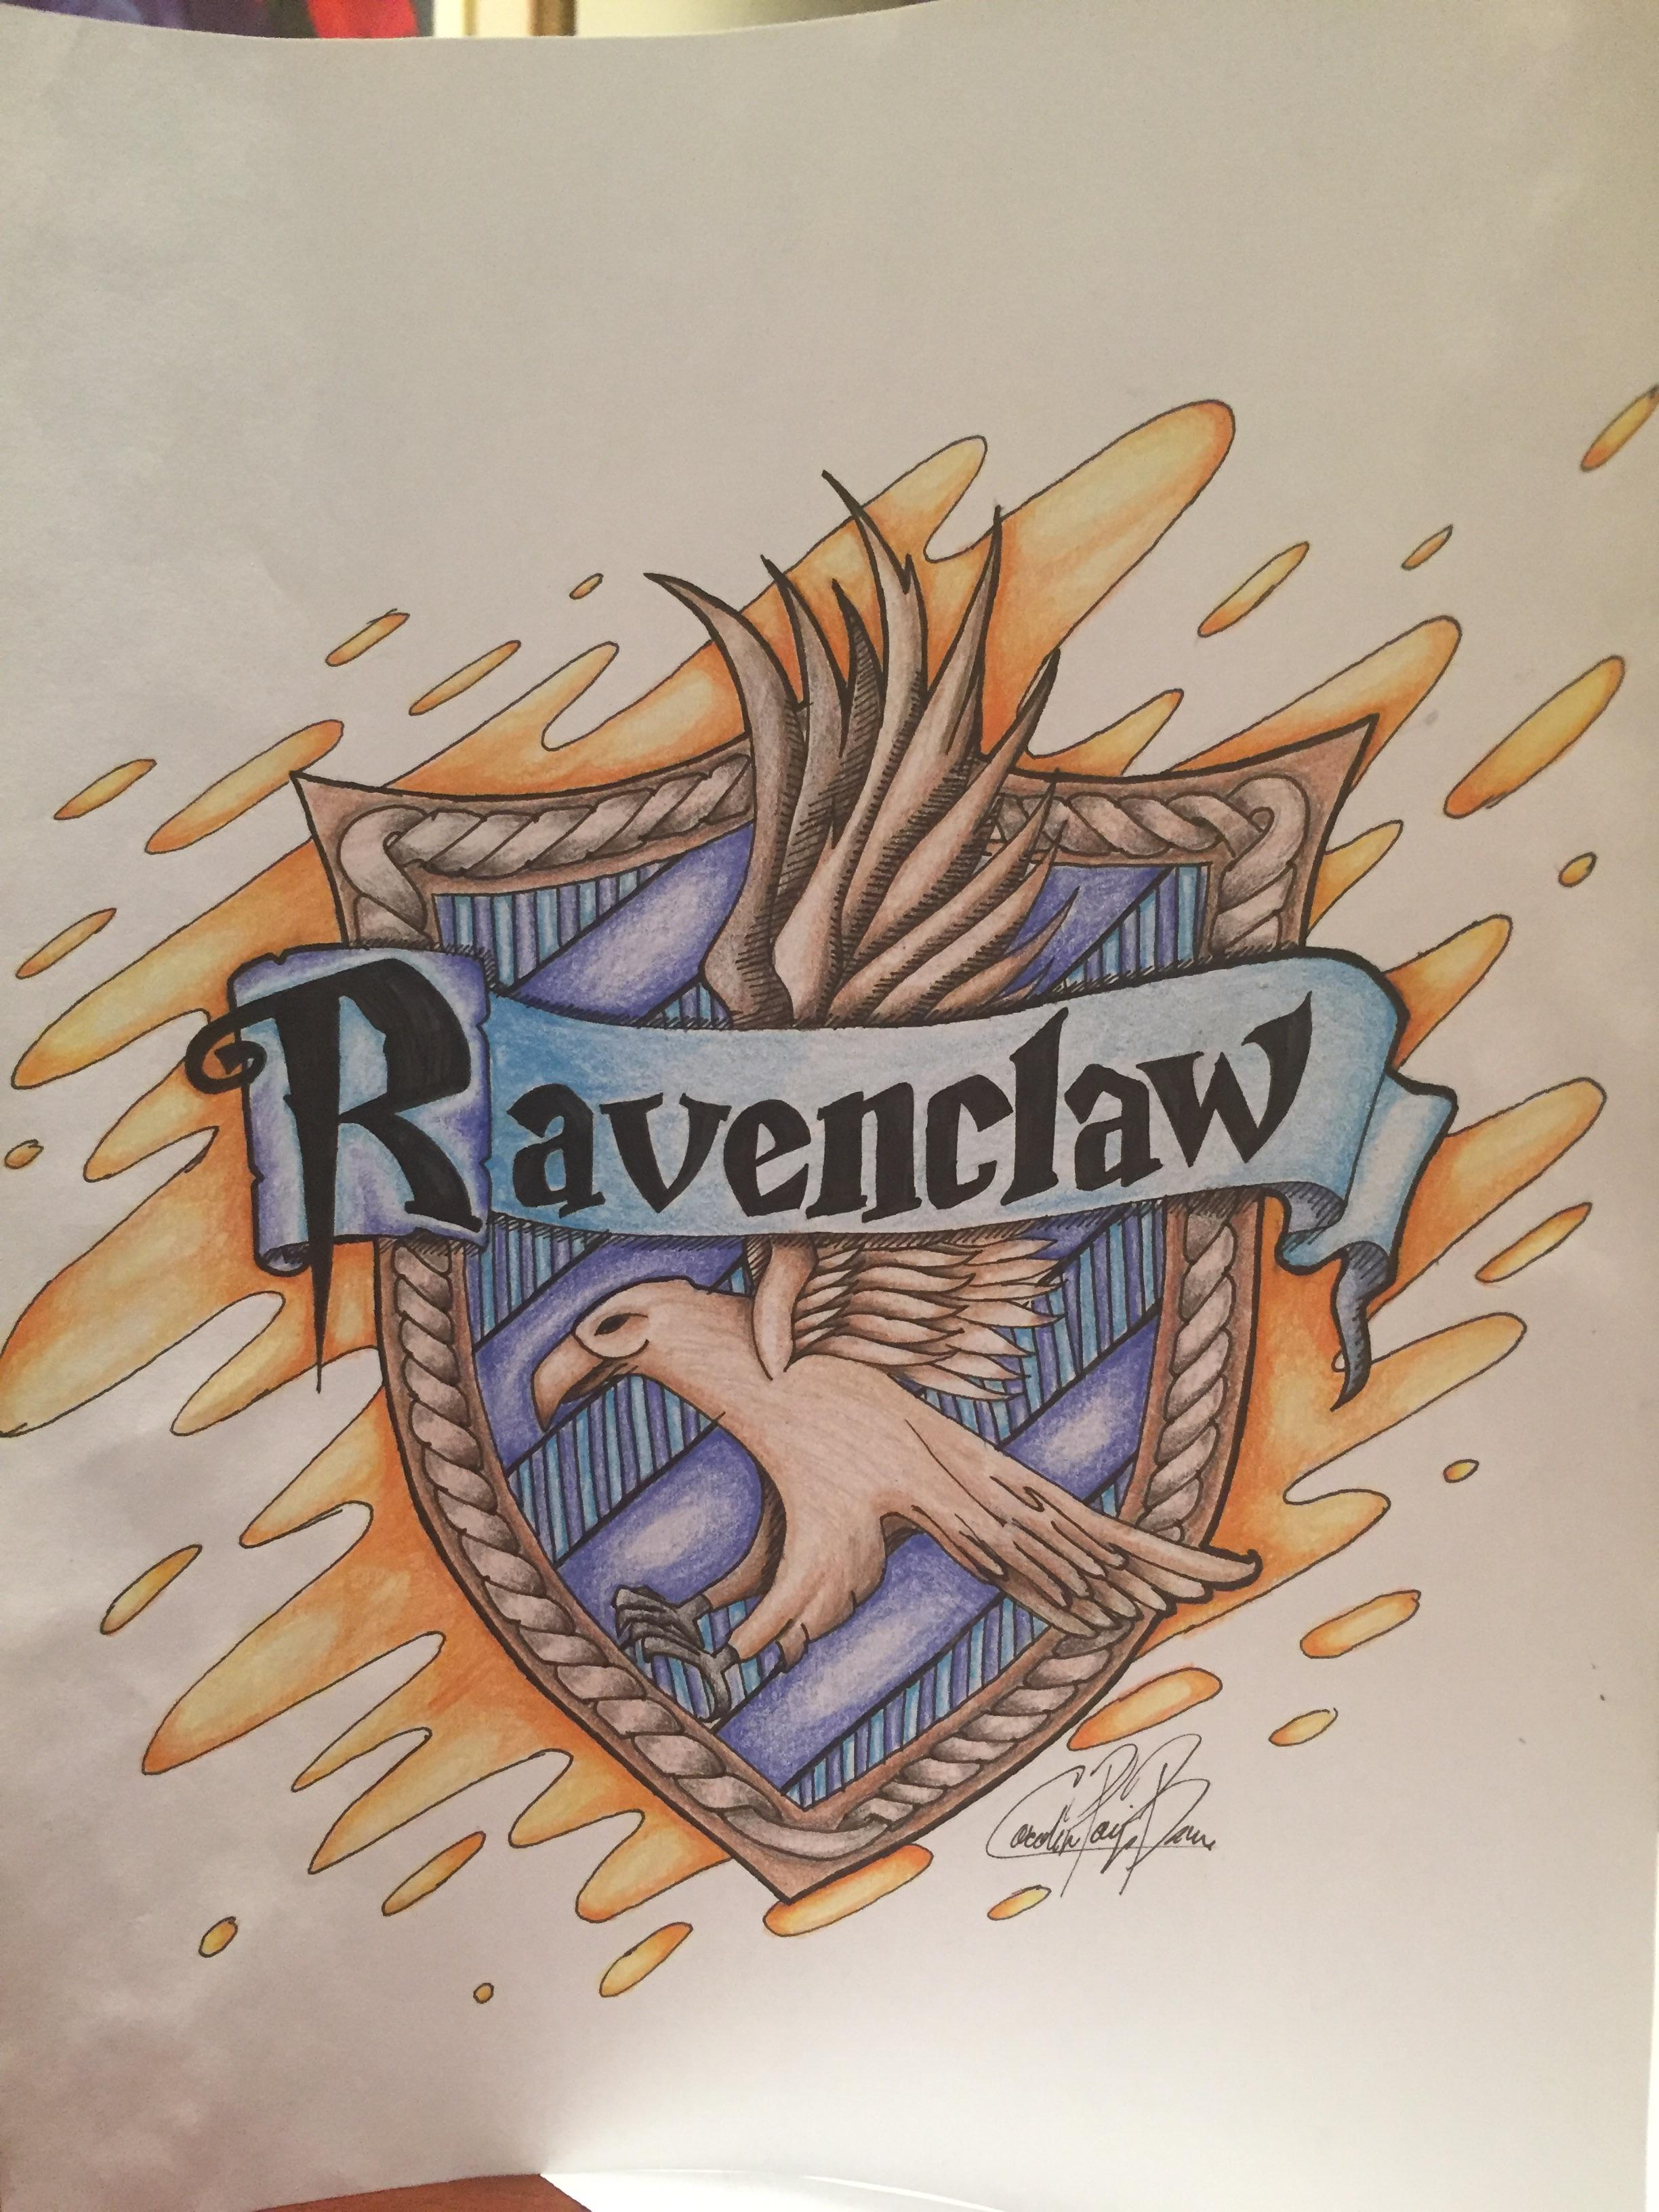 2448x3264 Ravenclaw Crest Drawing